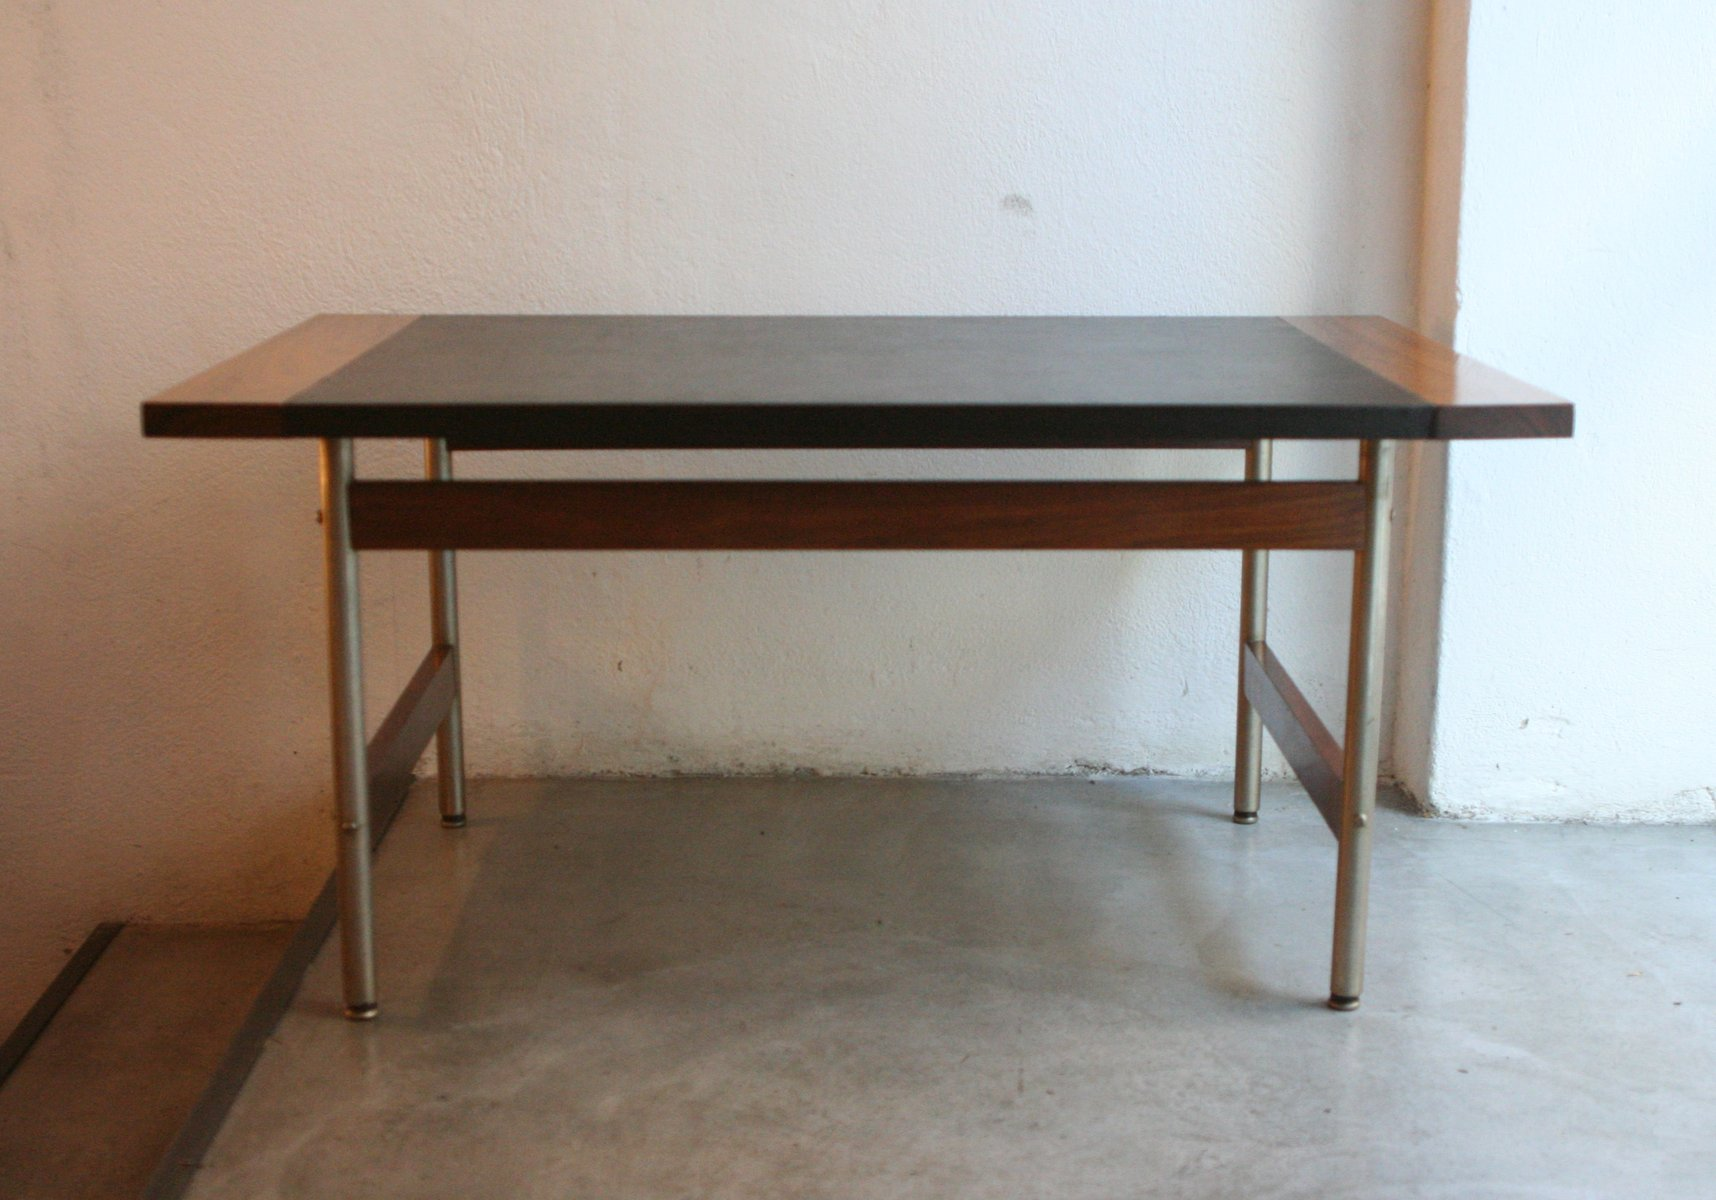 Vintage Rosewood and Leather Coffee Table by Sven Ivar Dysthe for